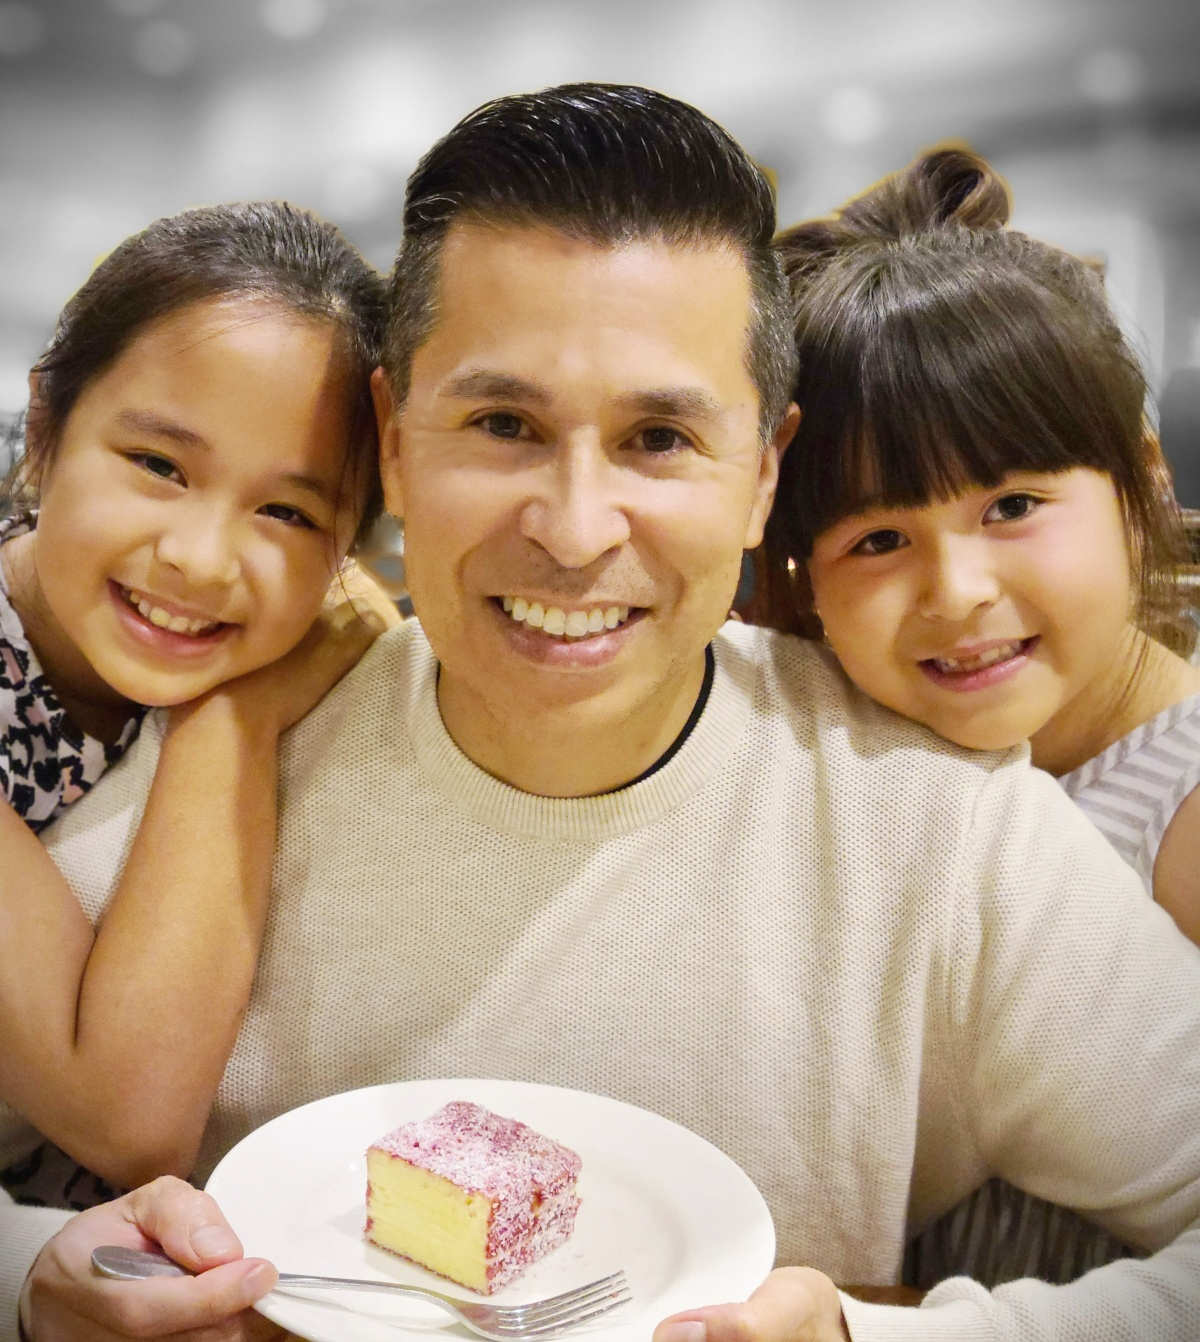 dr gire orthodontist in chino hills ca